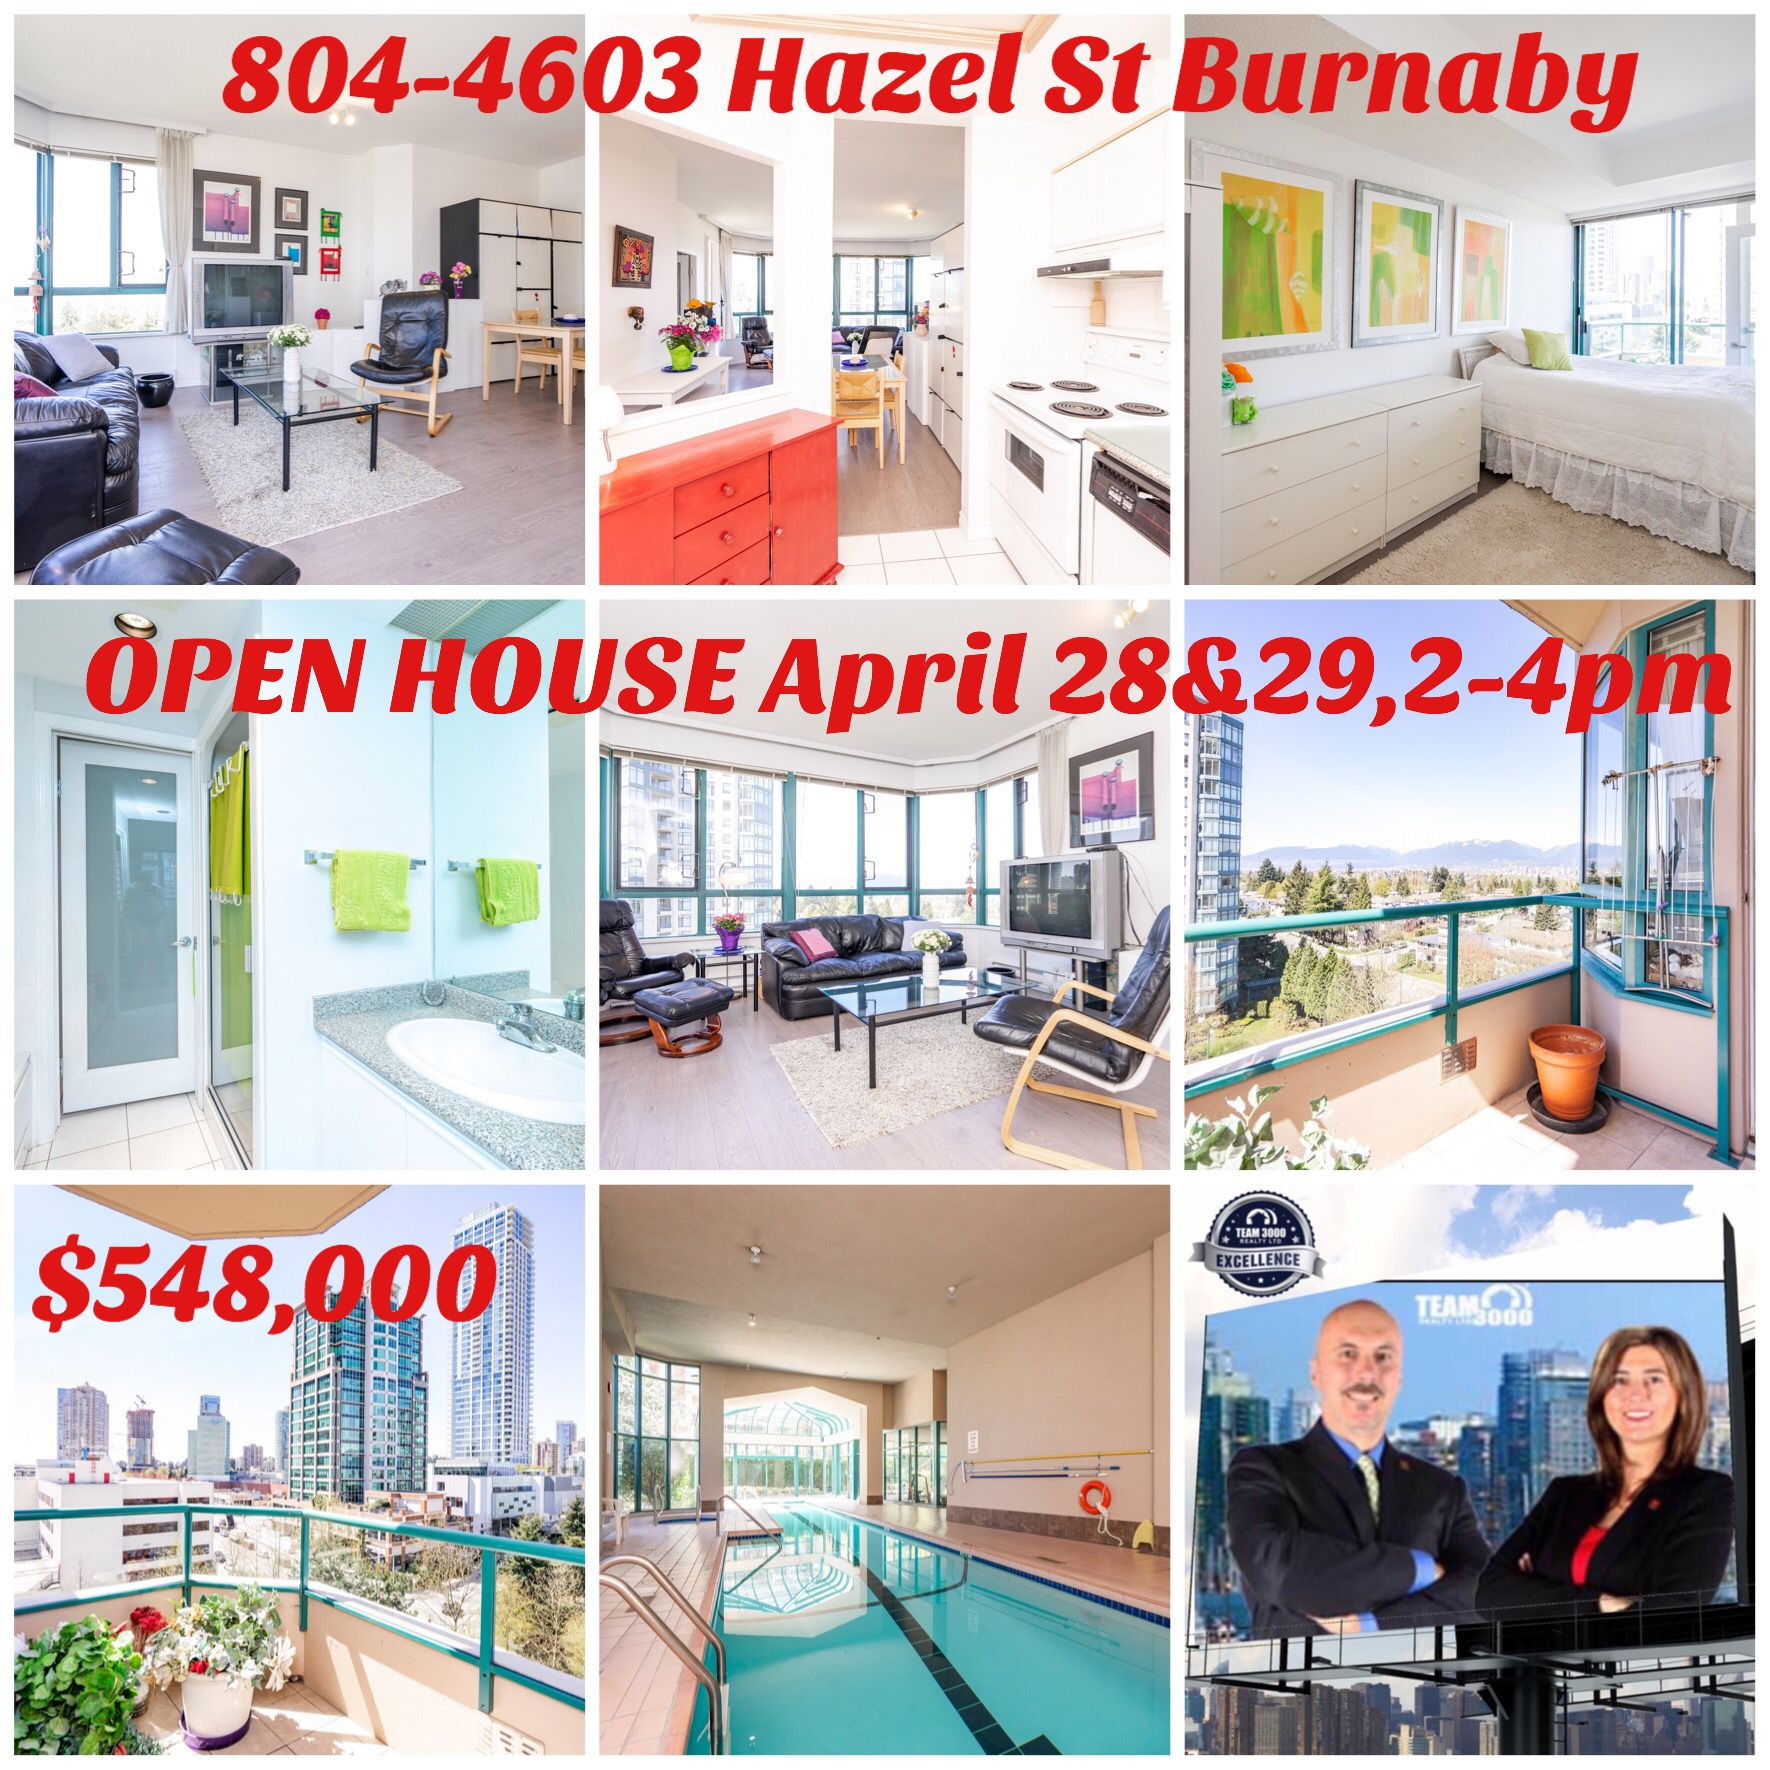 JUST LISTED! 8044603 HAZEL ST BURNABY to our